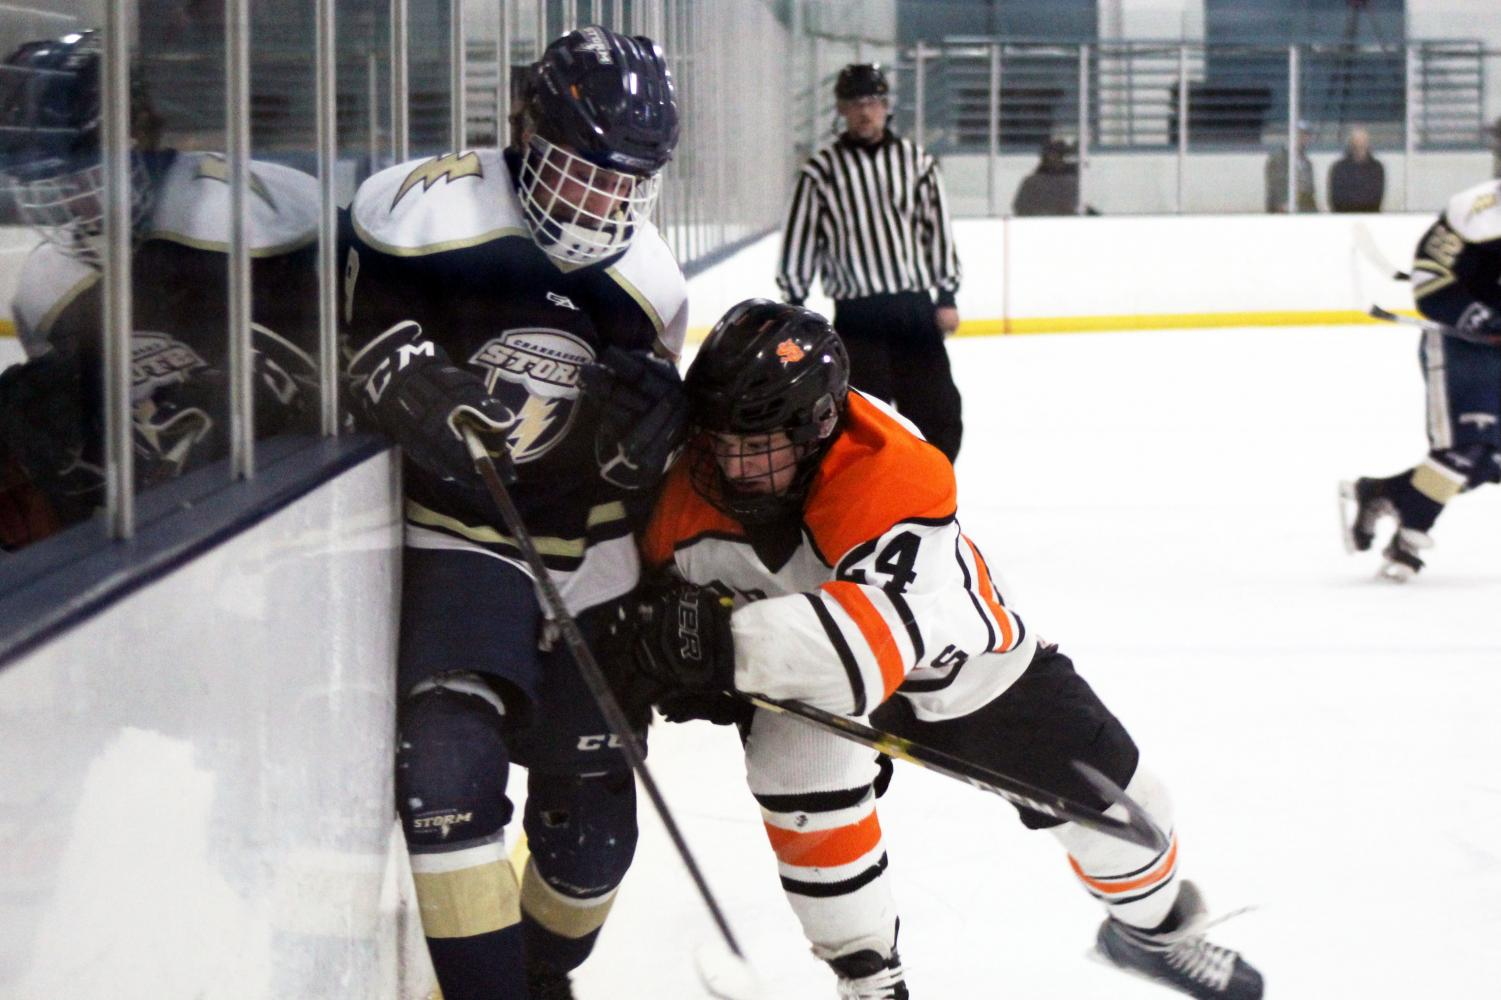 Senior Bobby Doss checks Chanhassen player Parker Thomas into the glass Feb. 6. Park currently holds a winning record of 14-8-0.